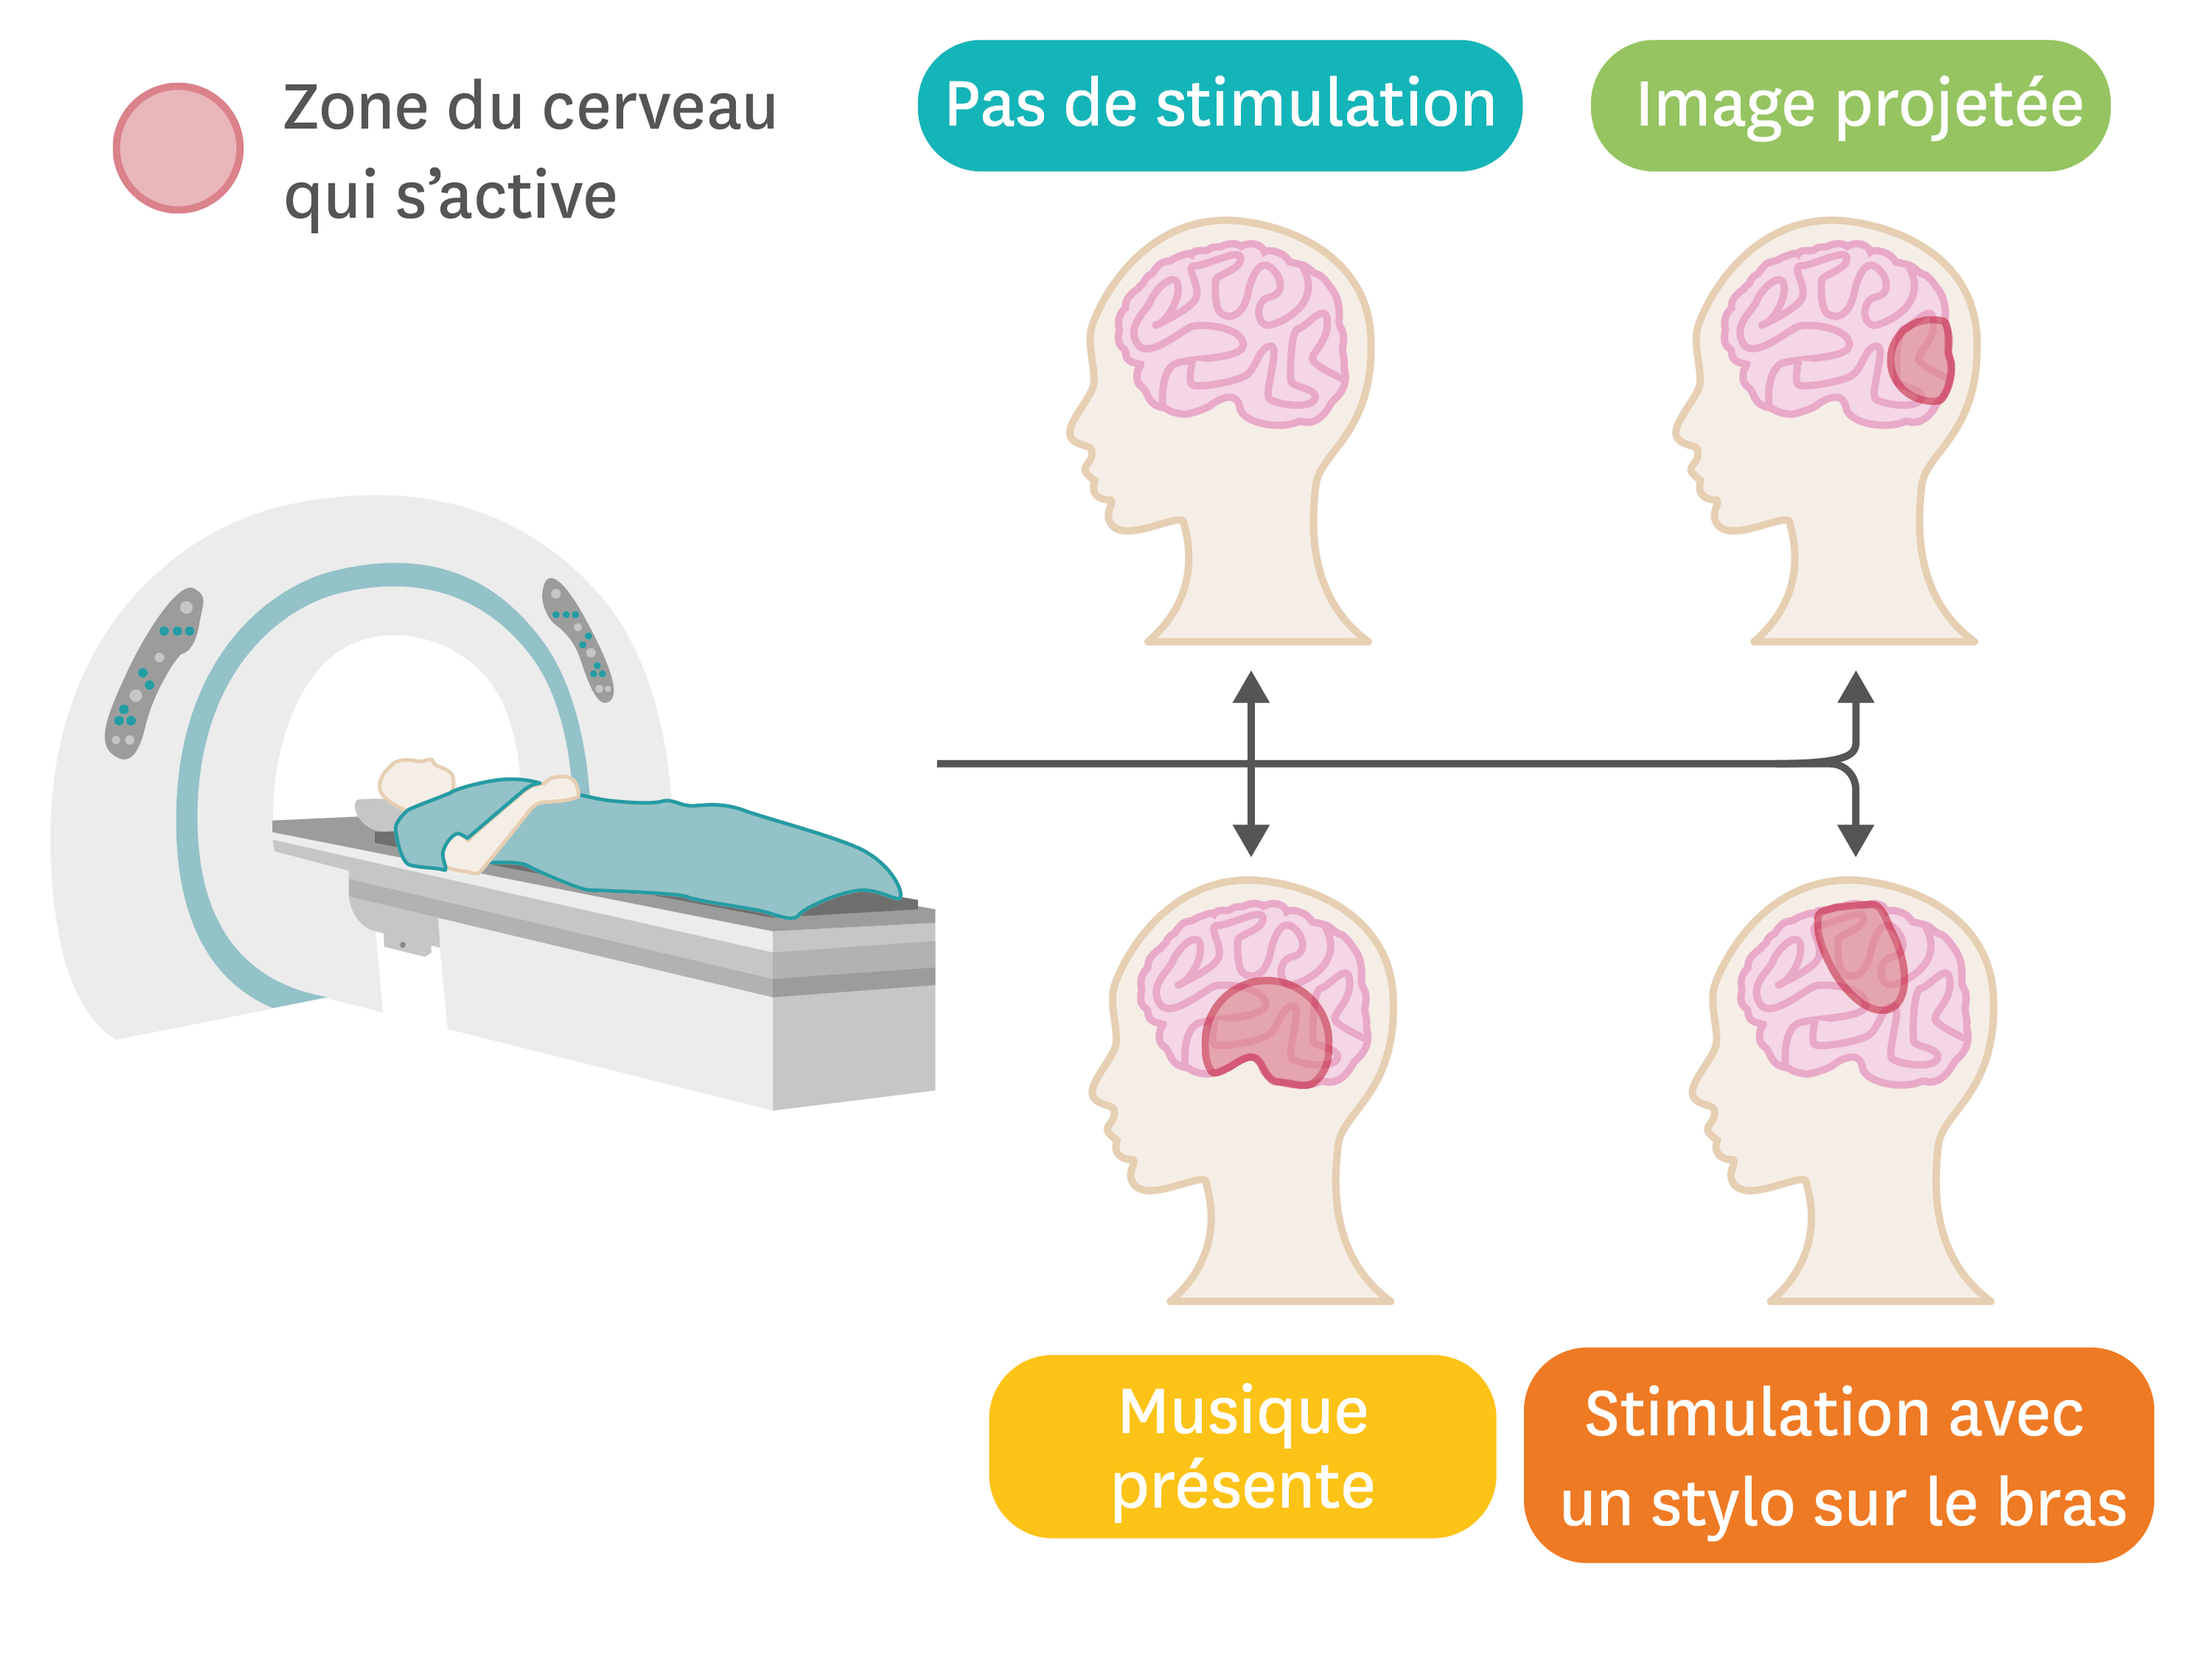 <stamp theme='svt-green1'>Doc. 1</stamp> L'IRM permet de visualiser les zones d'activation du cerveau.